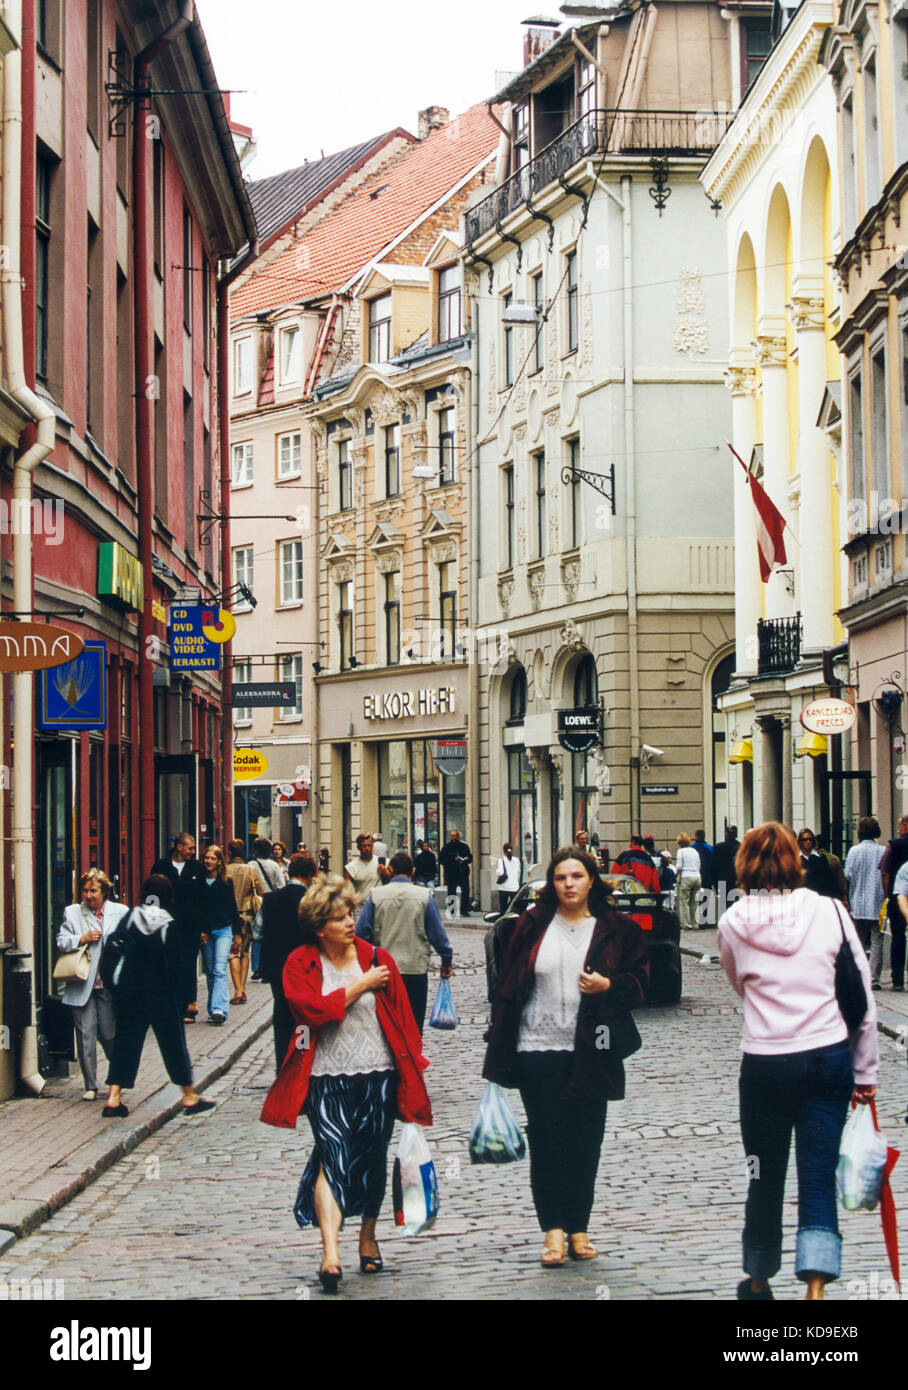 LATVIA Riga people in the old town for shopping 2005 - Stock Image